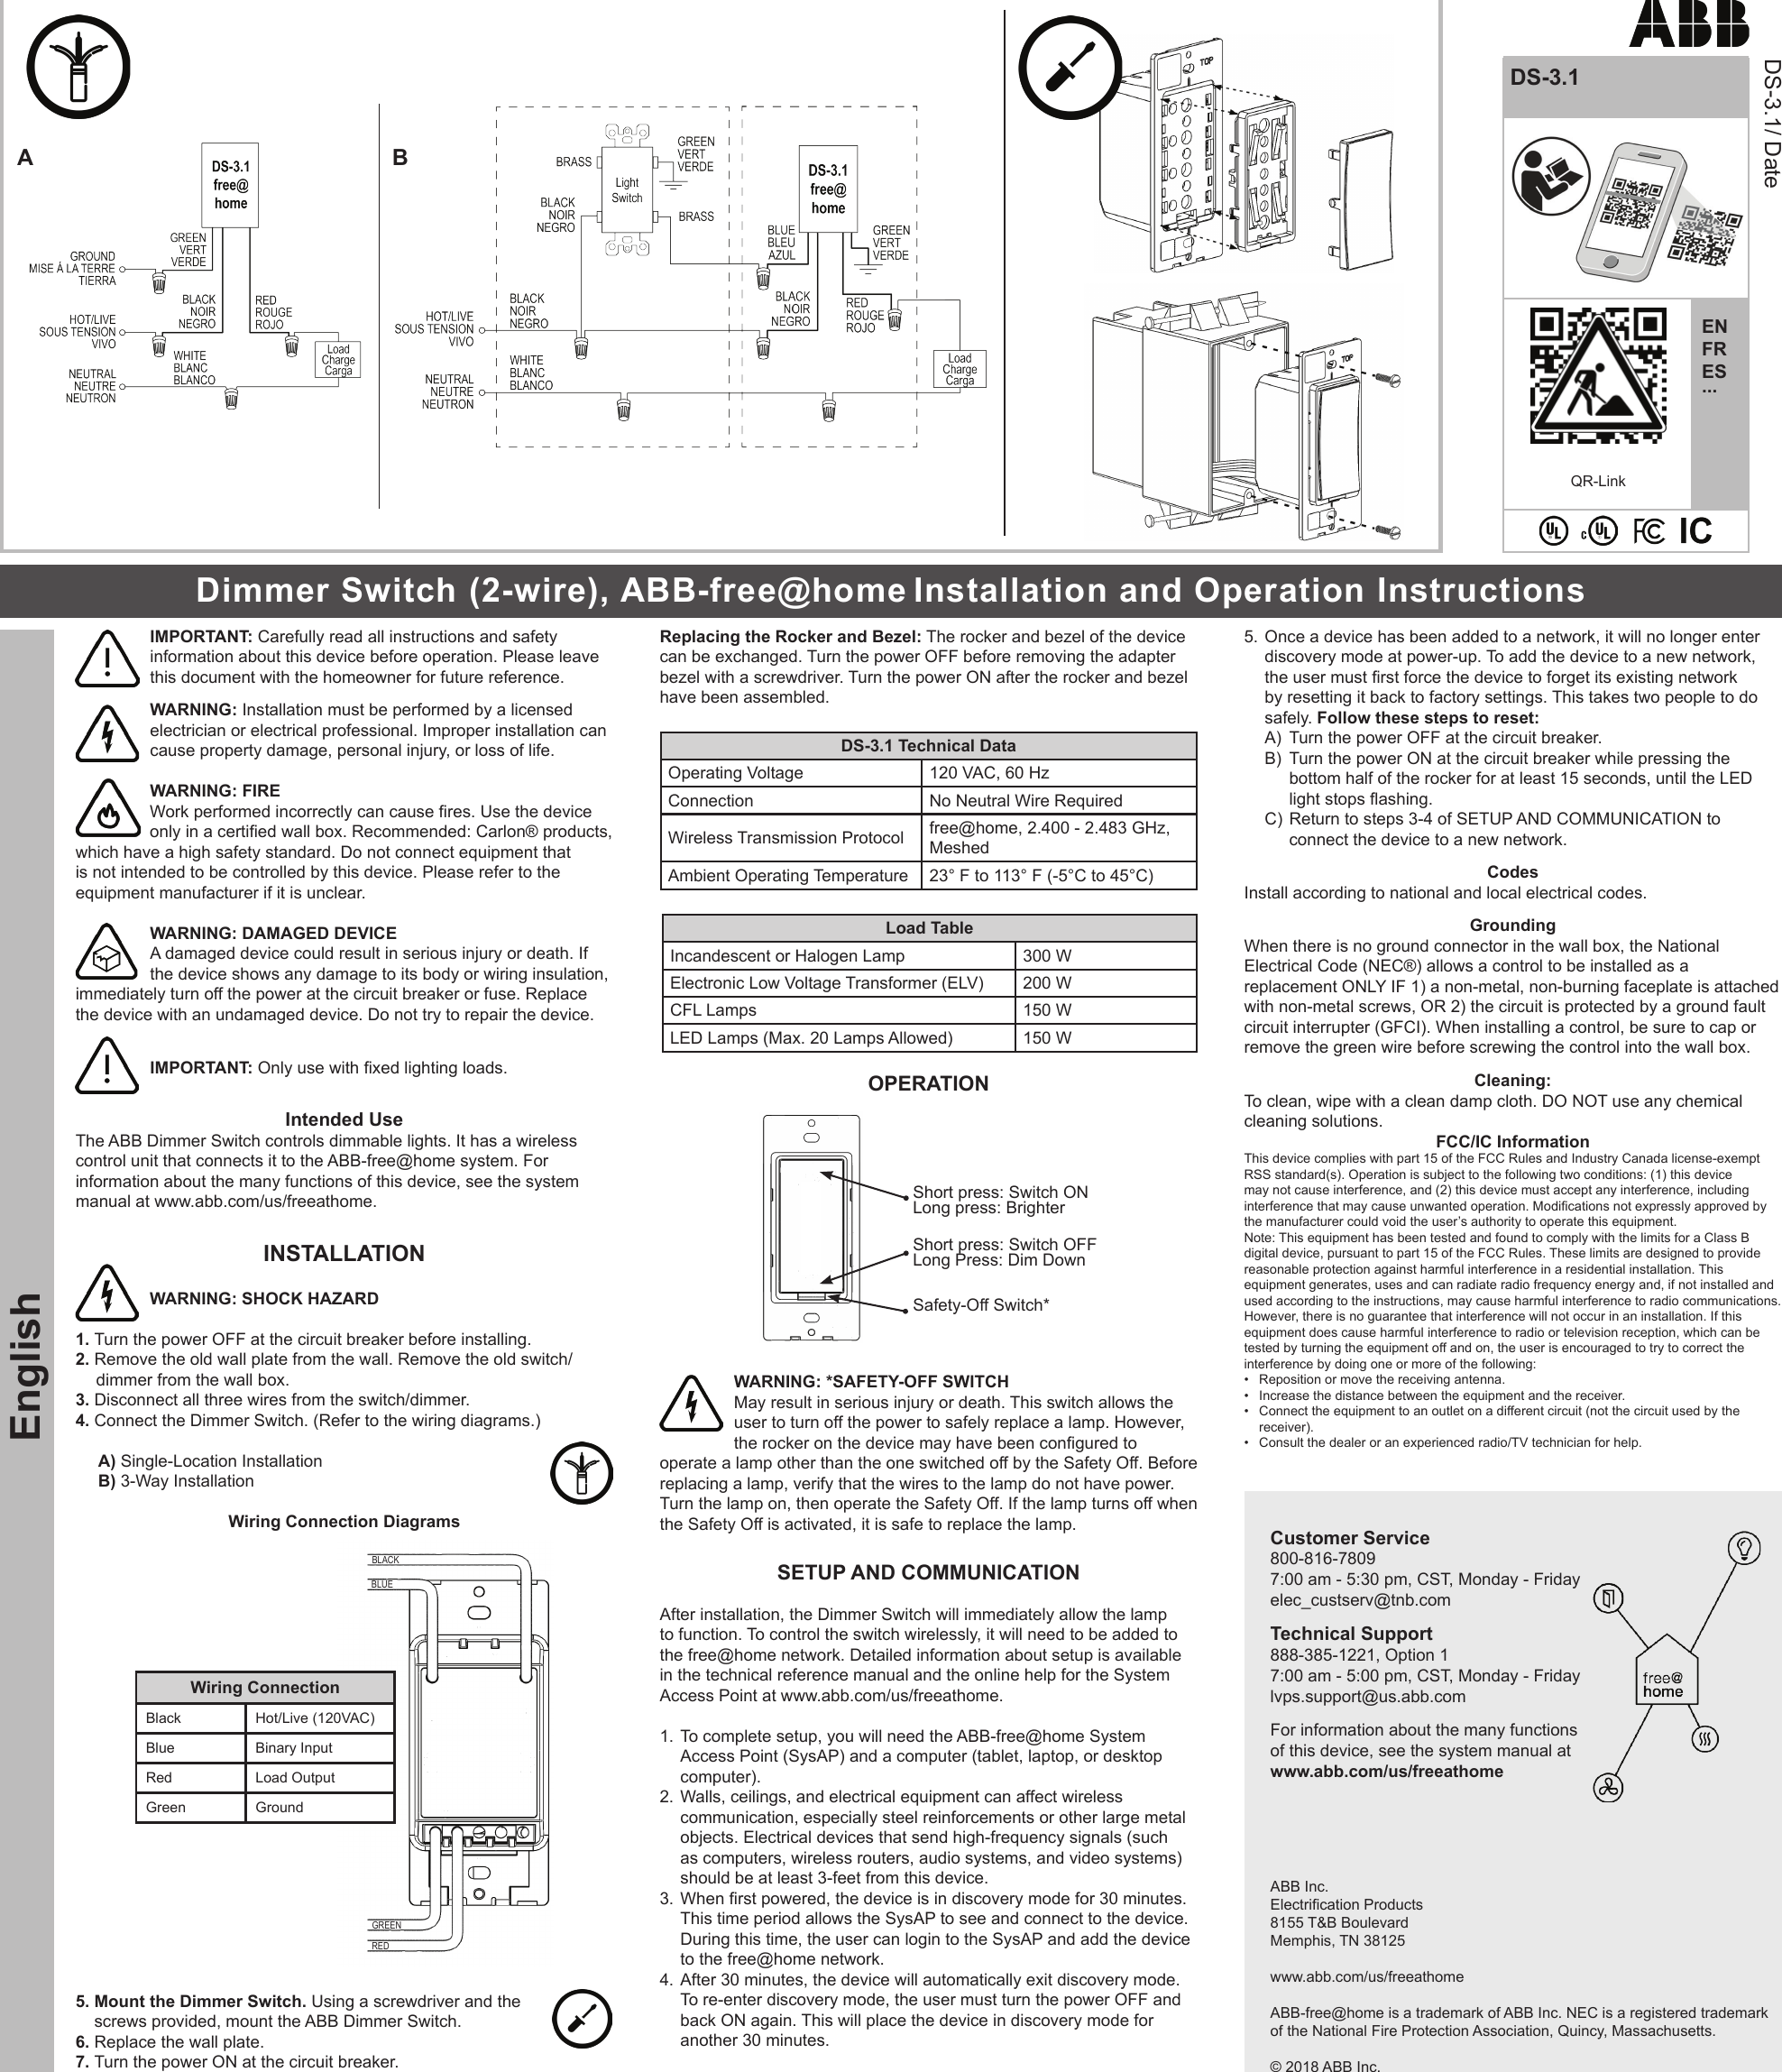 Unique Dimmer Switch Wiring Diagram Manual